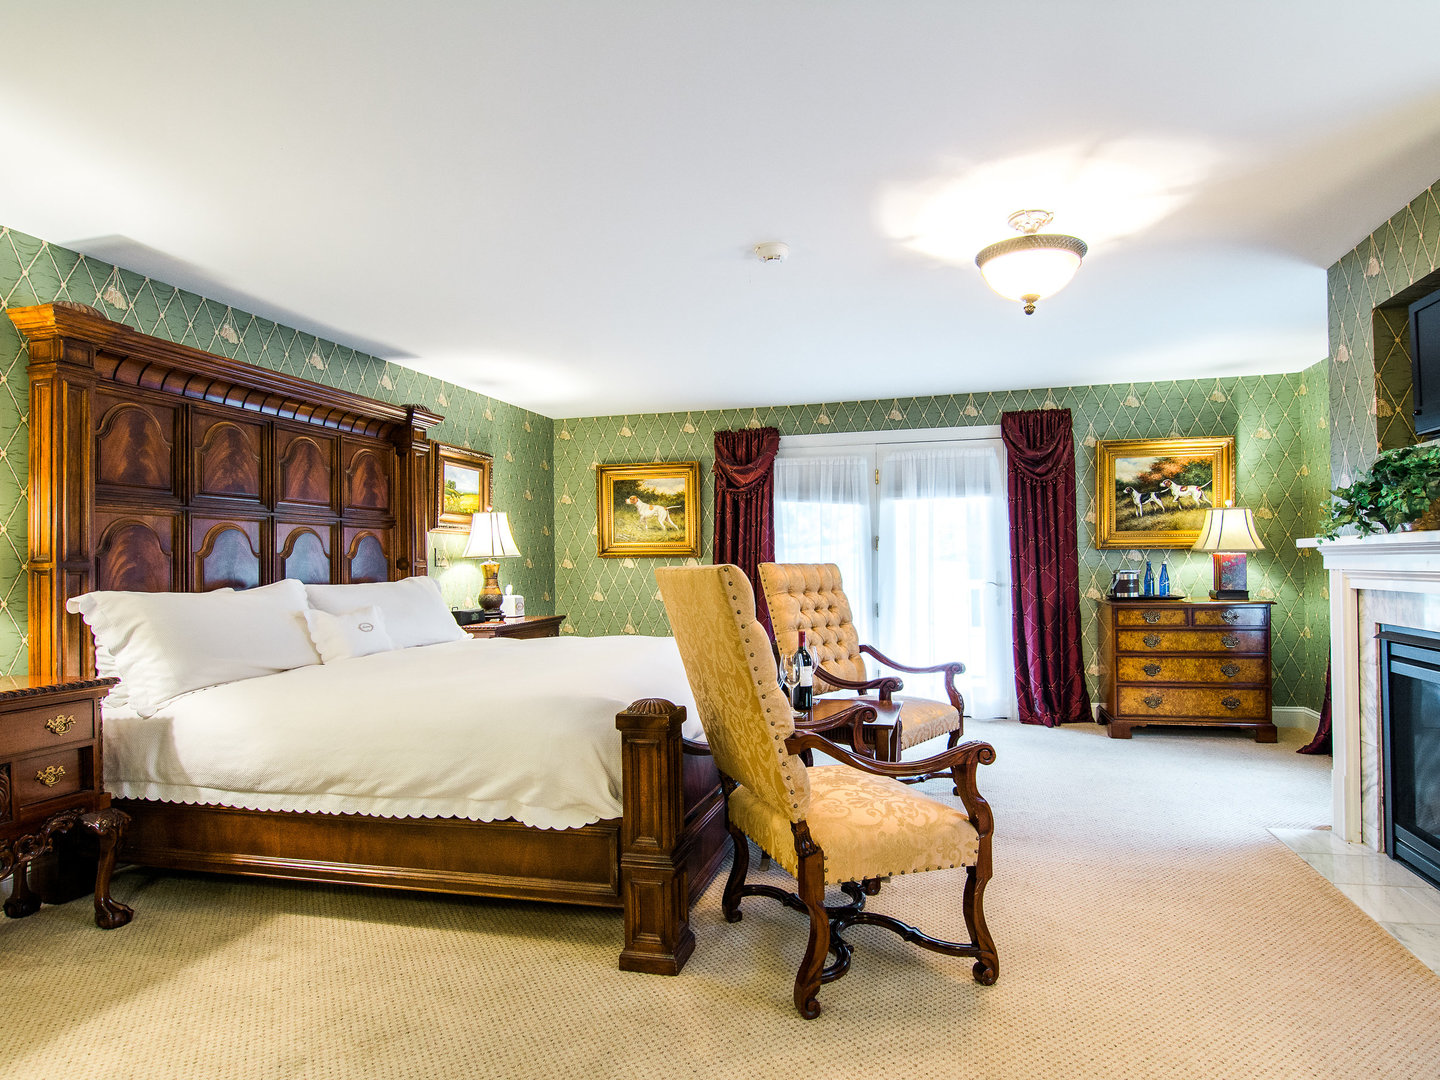 A bedroom with a large bed in a room at Antrim House.